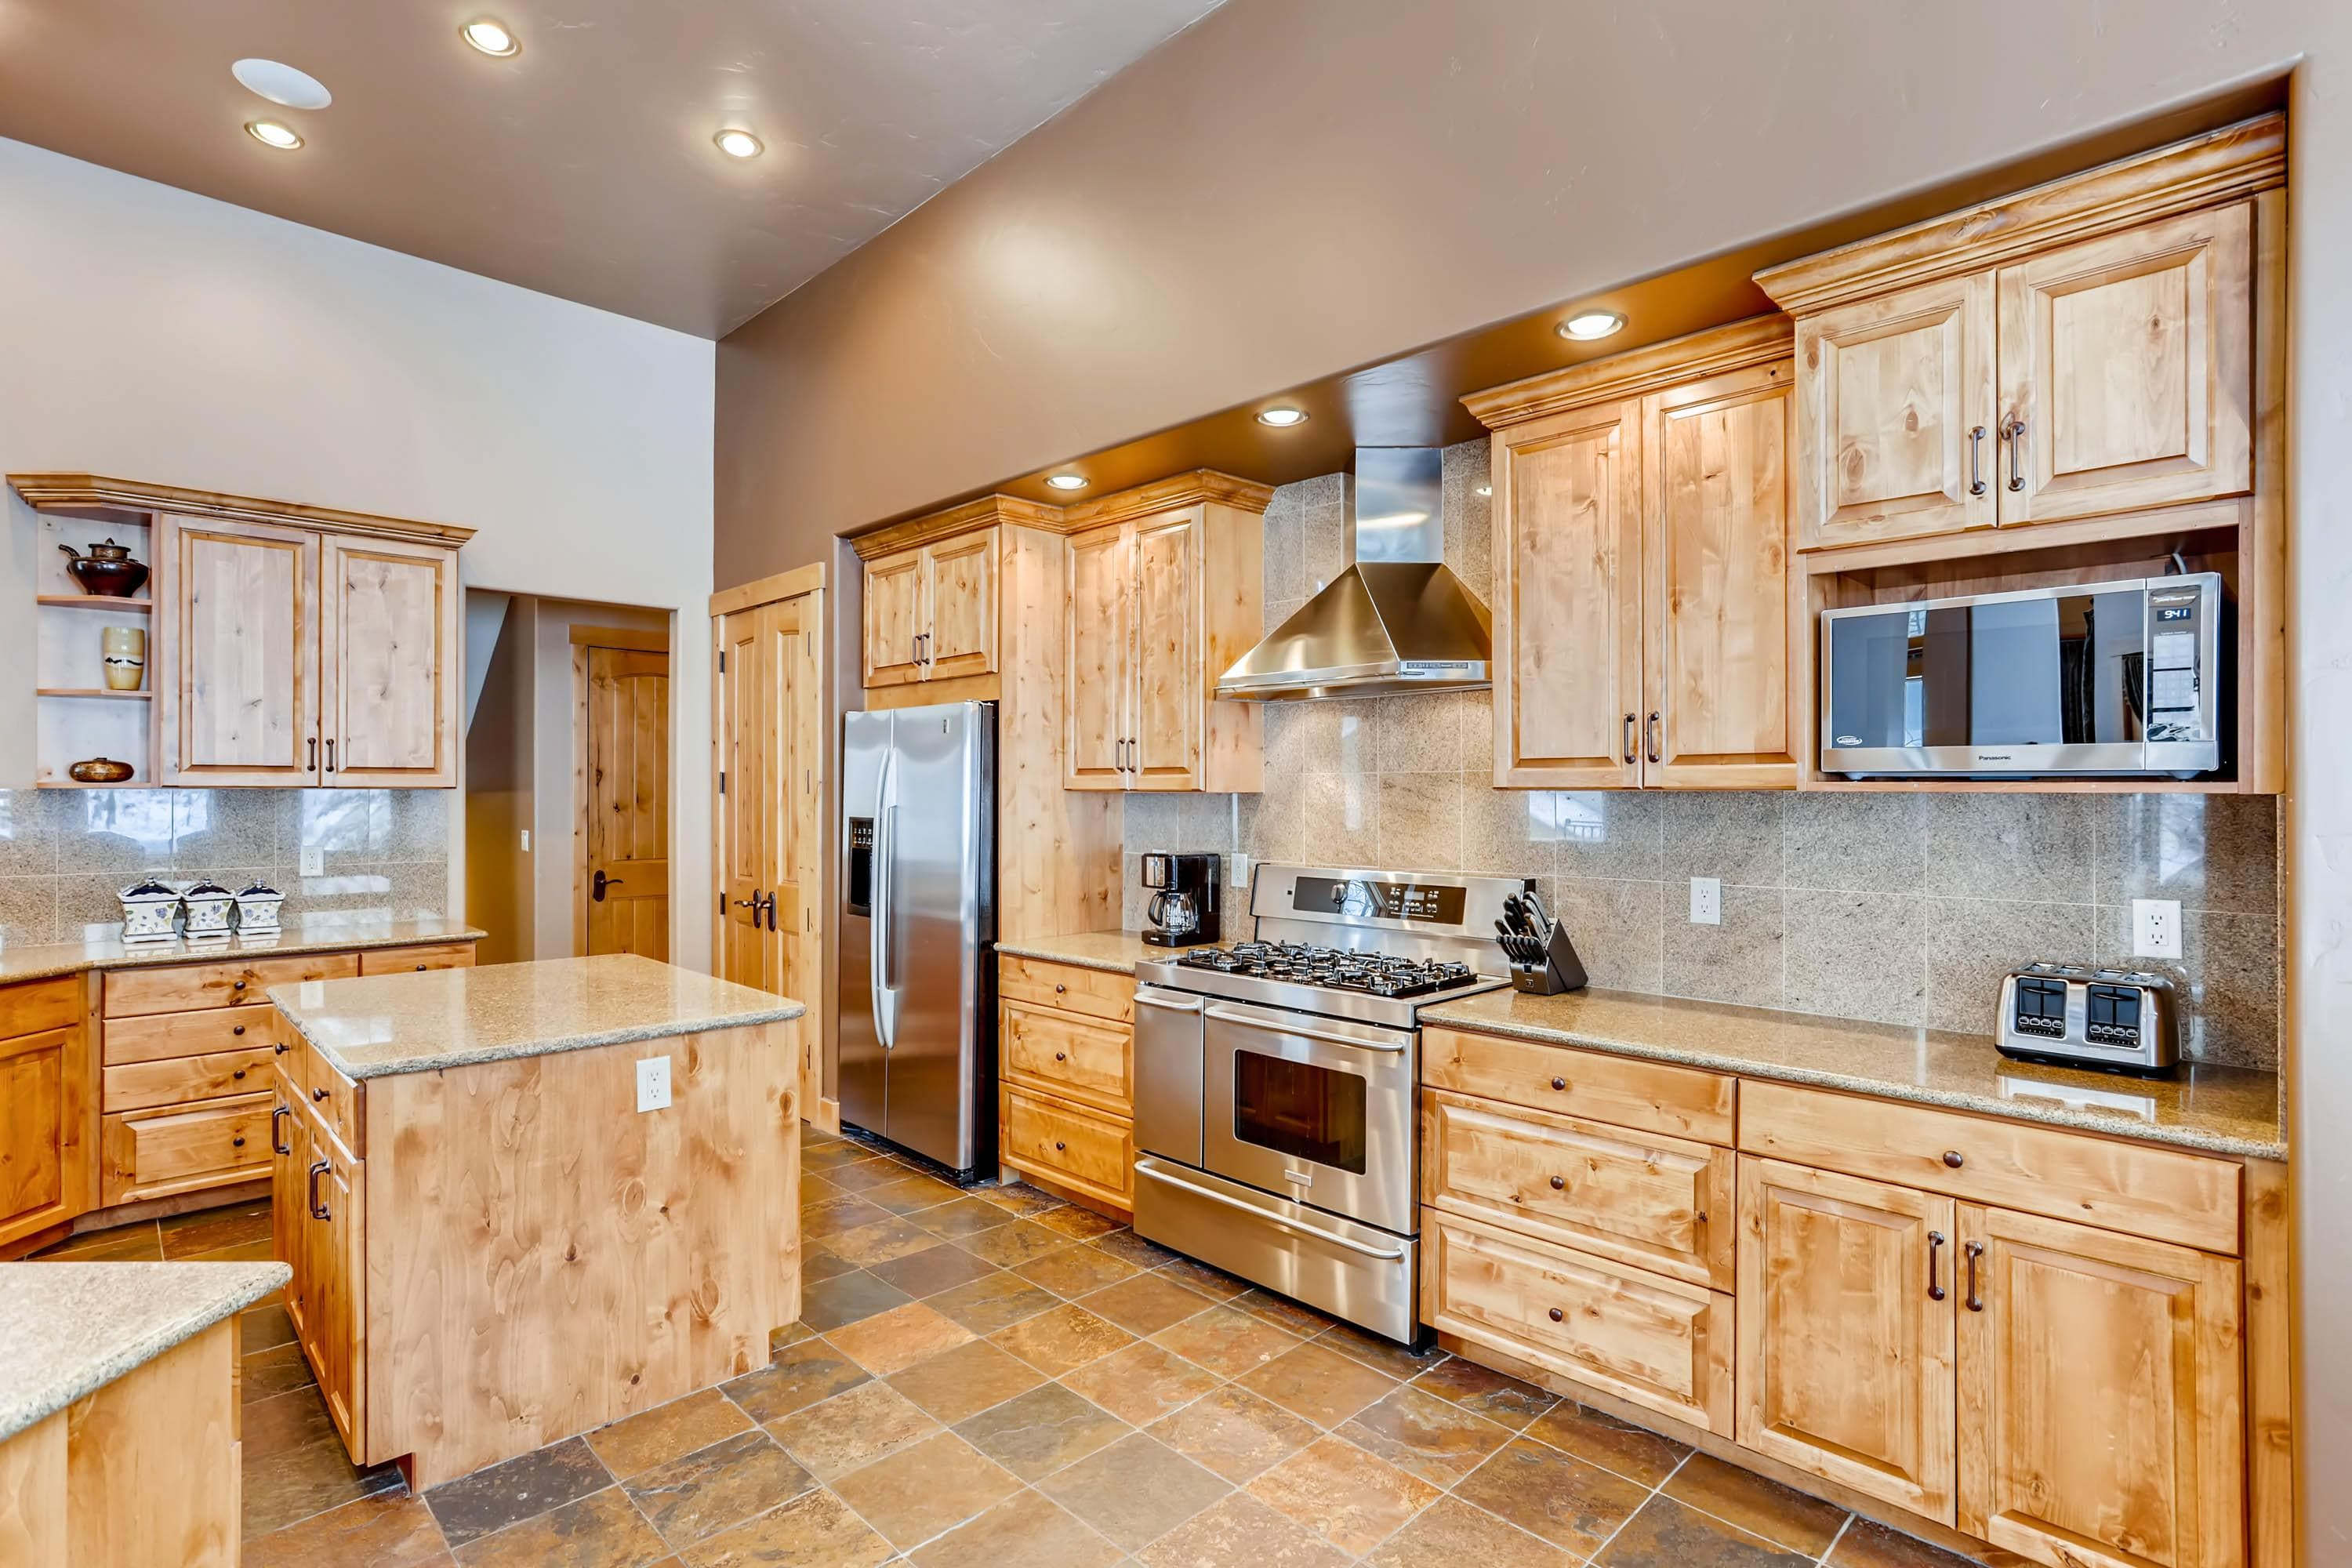 Granite countertops and stainless steel appliances complement warm wood cabinetry in the chef's kitchen.